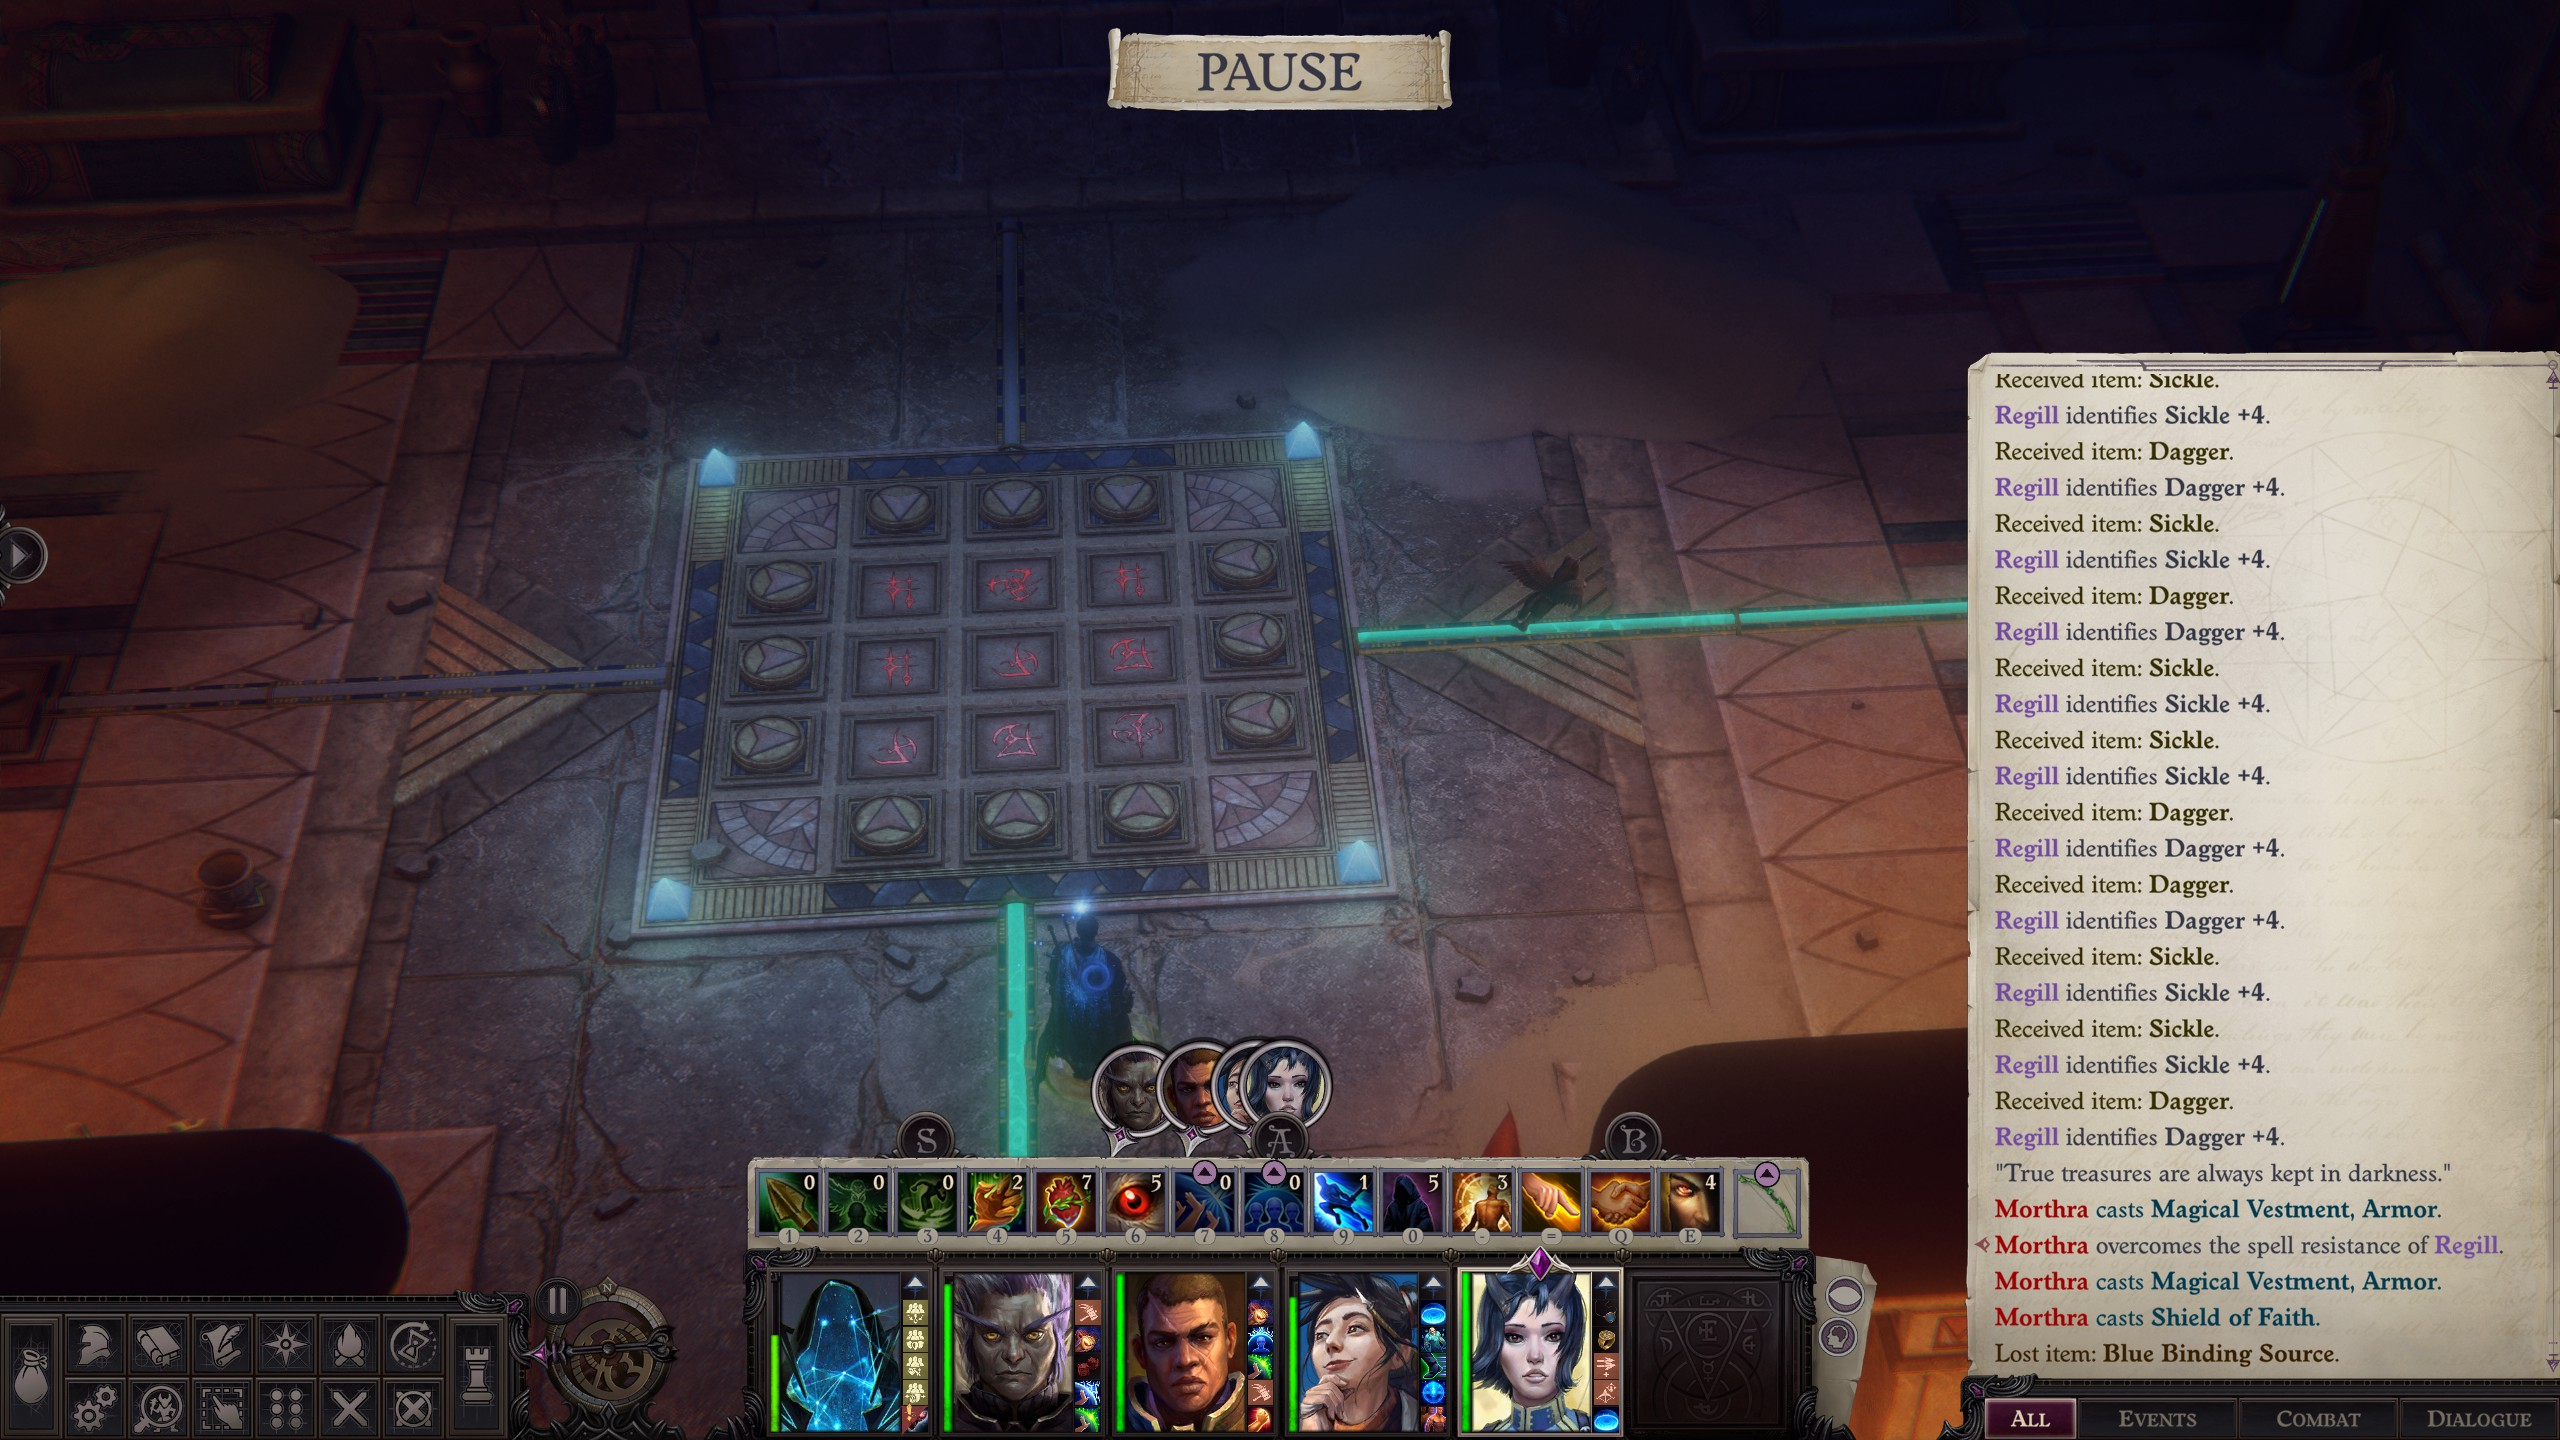 Pathfinder: Wrath of the Righteous - Puzzle Solution Tips for Enigma - Playthrough - Puzzle 2: Arrows - 6BB052F